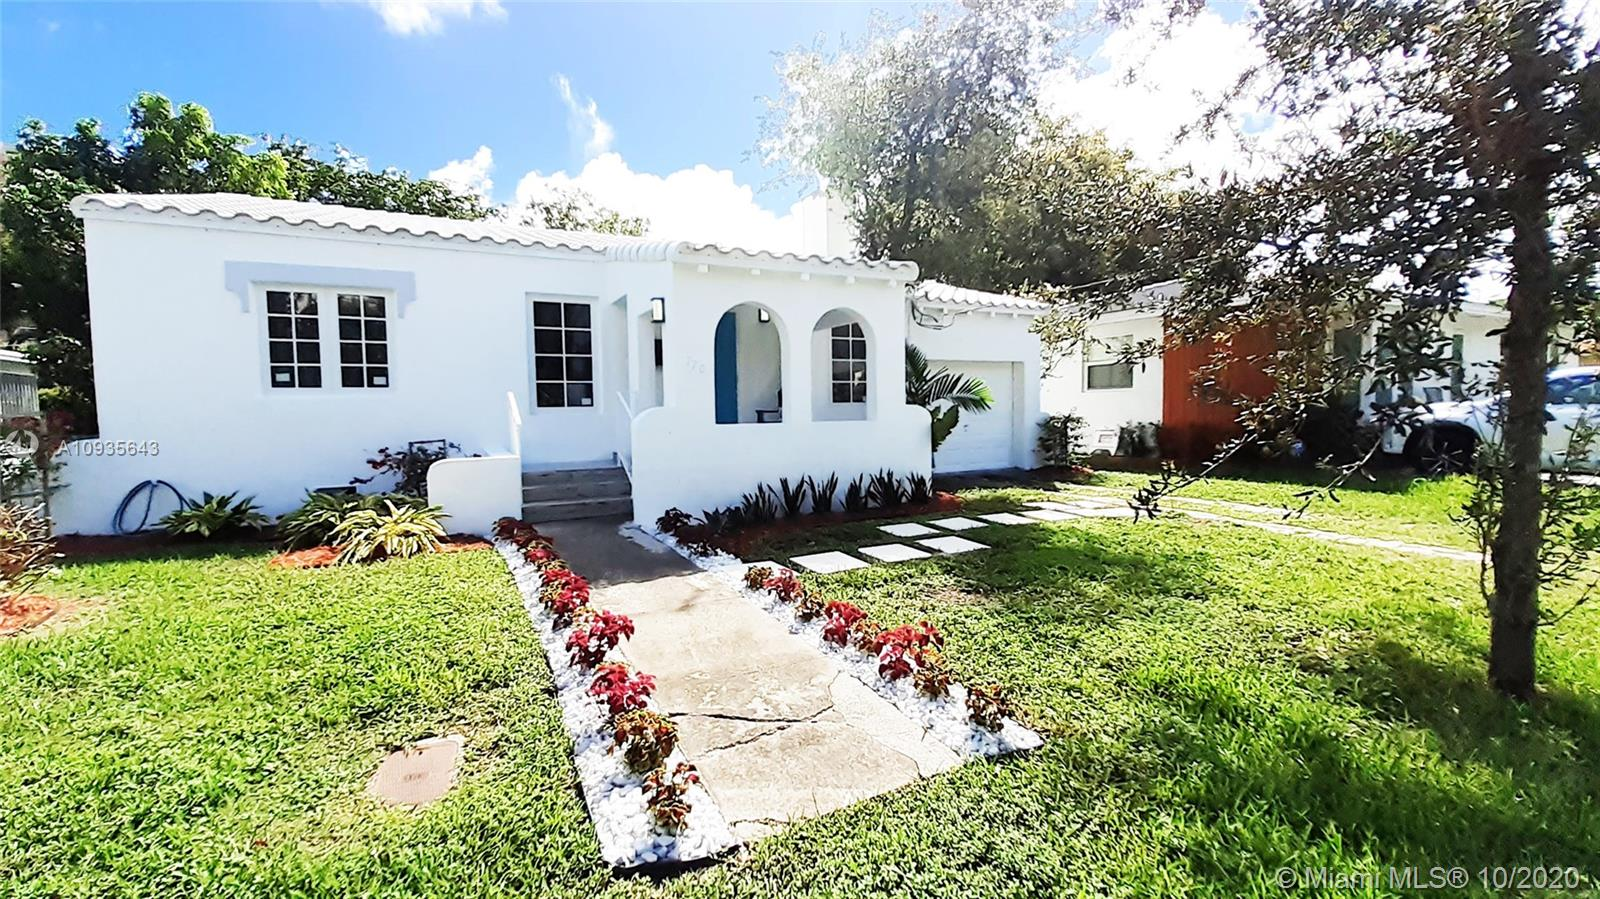 770 NE 70th St, Miami, Florida 33138, 3 Bedrooms Bedrooms, ,2 BathroomsBathrooms,Residential,For Sale,770 NE 70th St,A10935643